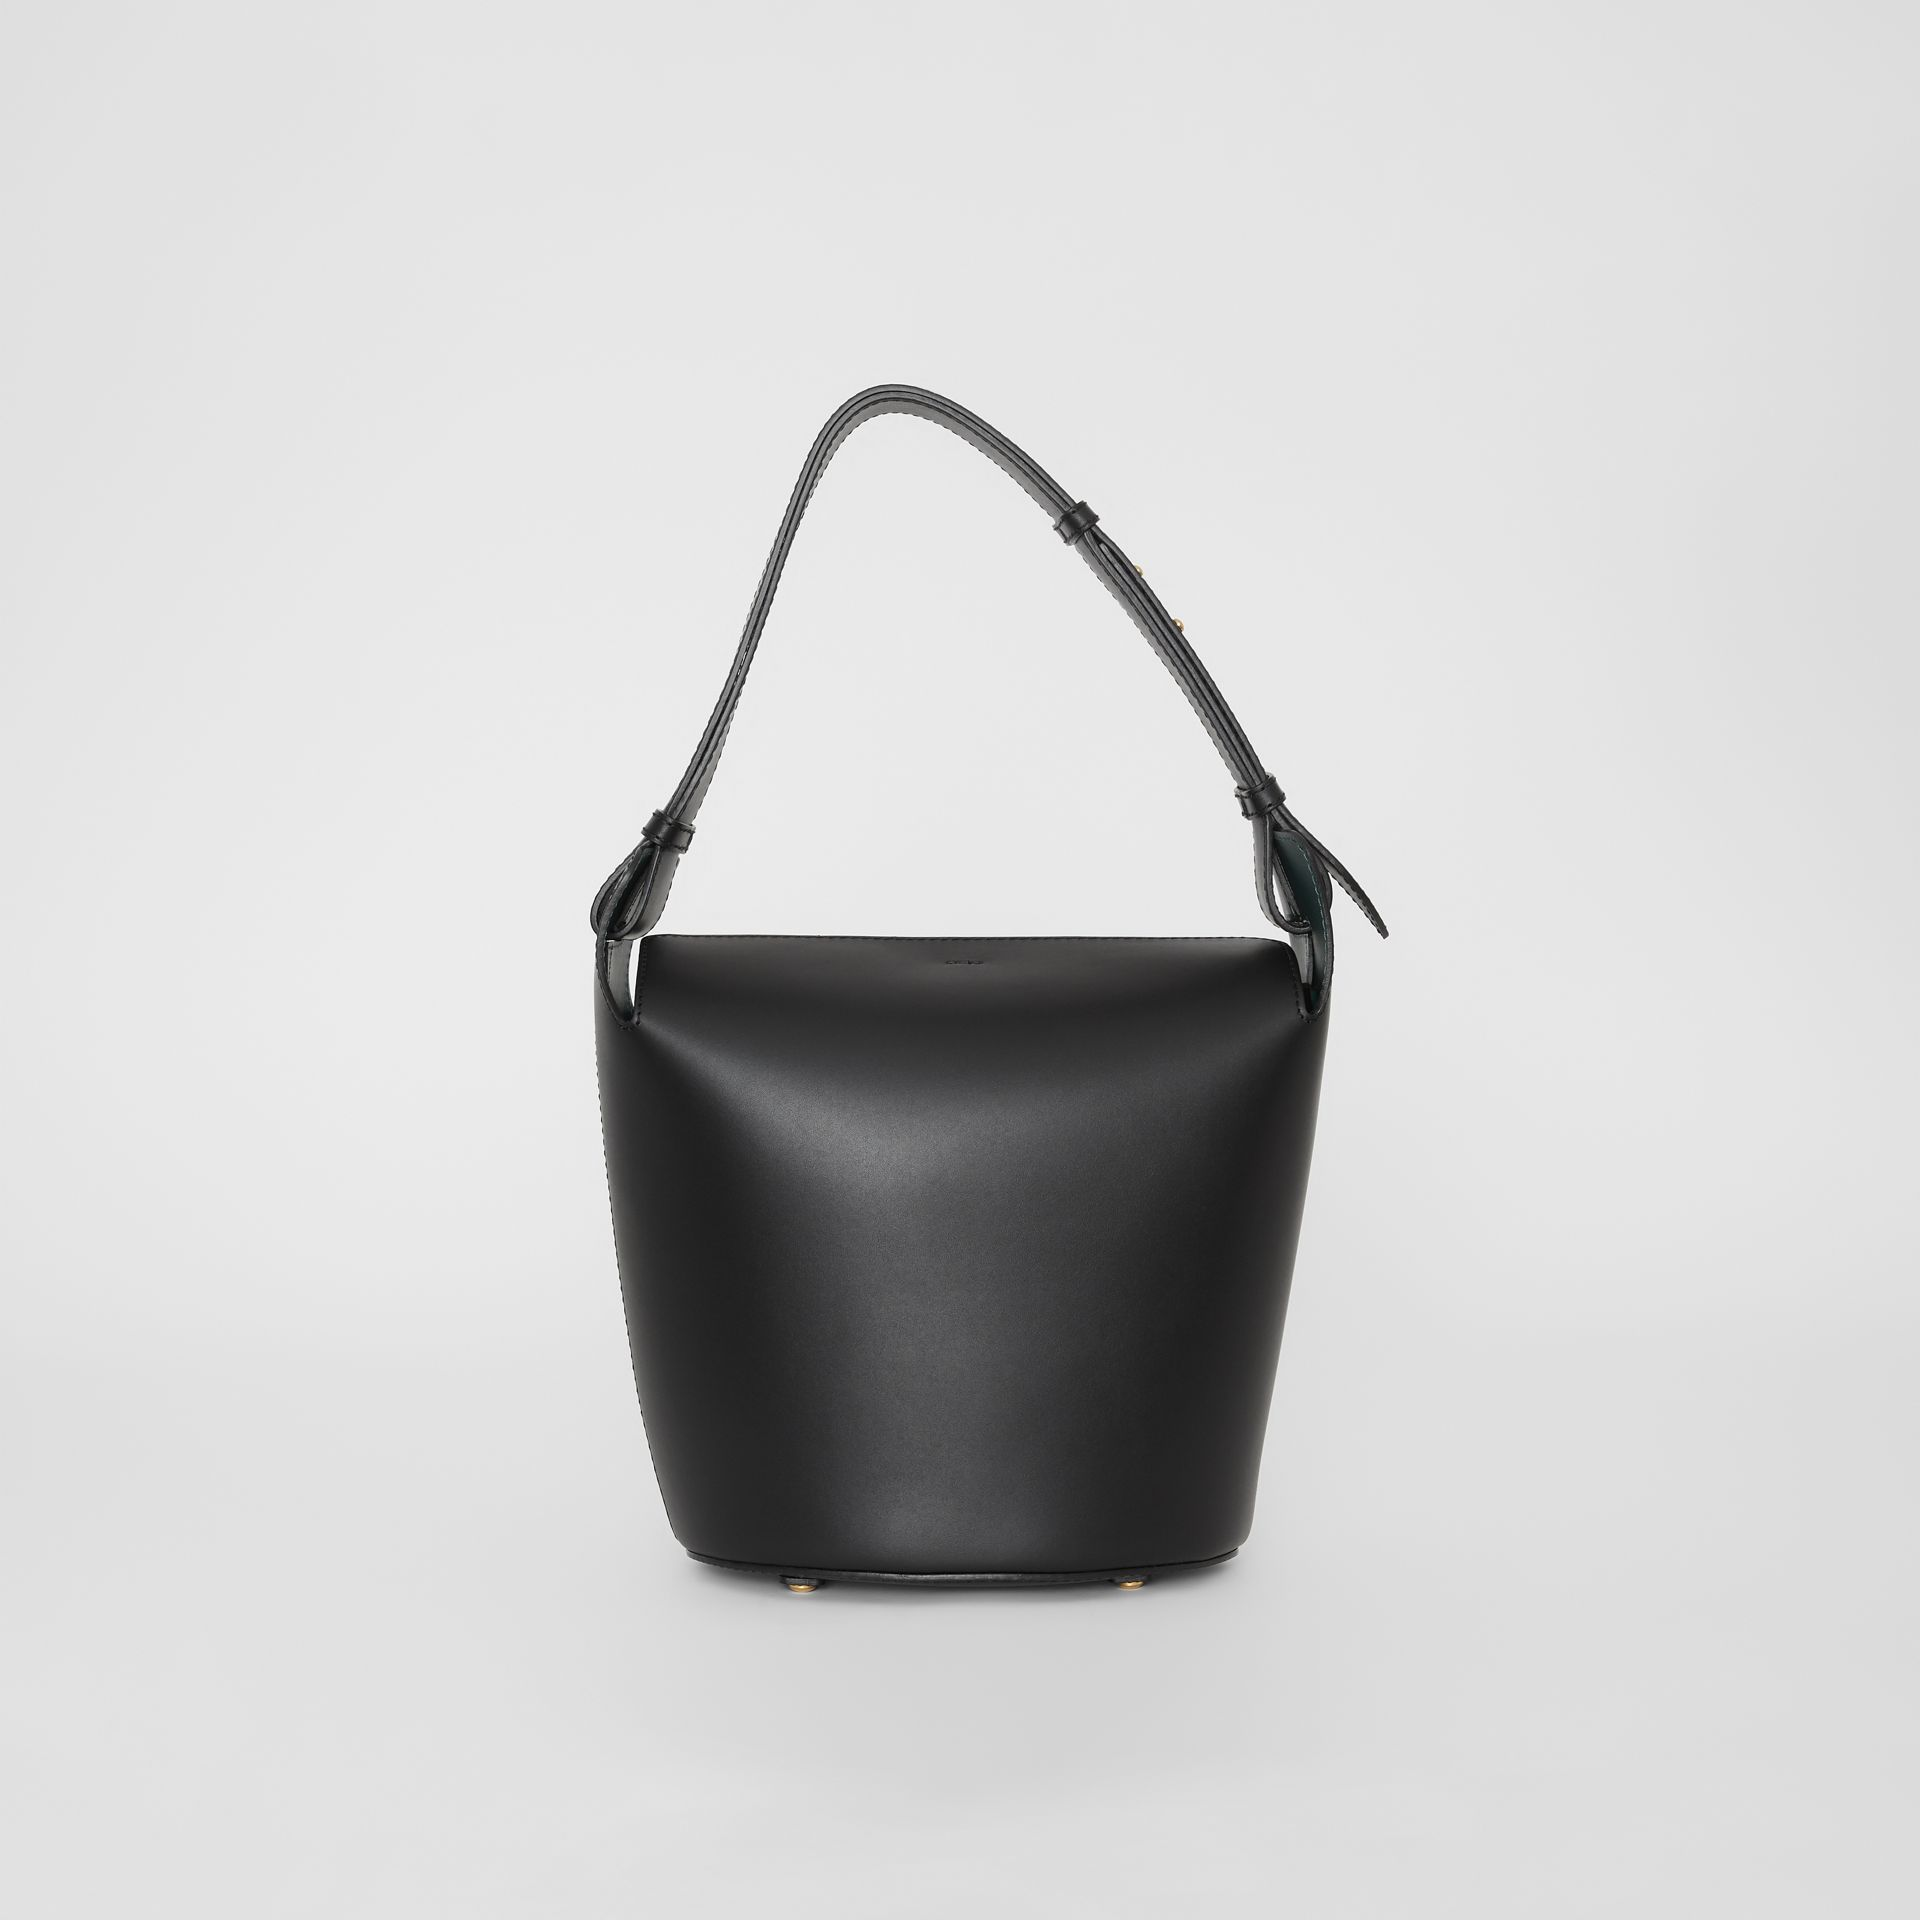 Sac The Bucket moyen en cuir (Noir) - Femme | Burberry Canada - photo de la galerie 7